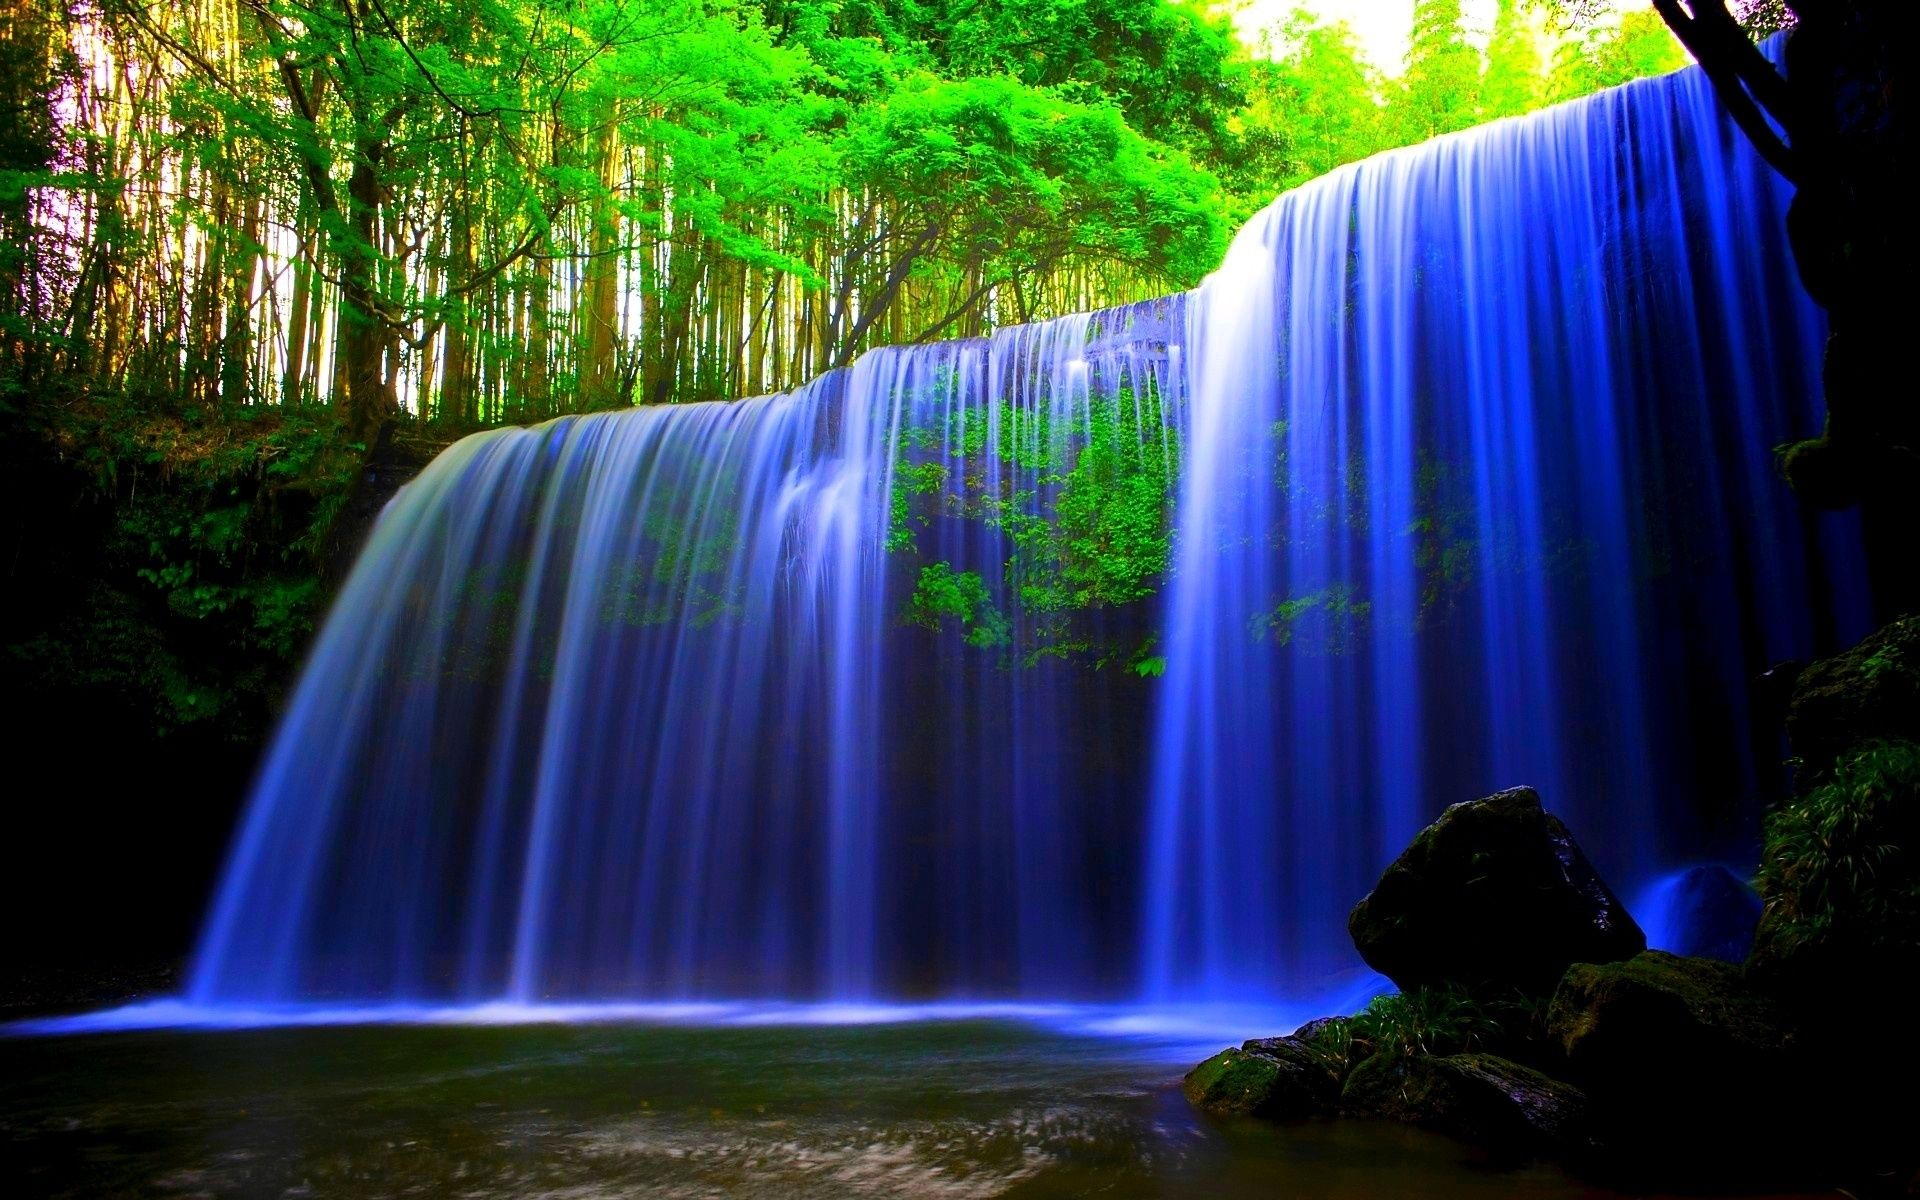 Live Backgrounds For PC Free Download | a | Pinterest | Waterfall wallpaper, Natural waterfalls ...